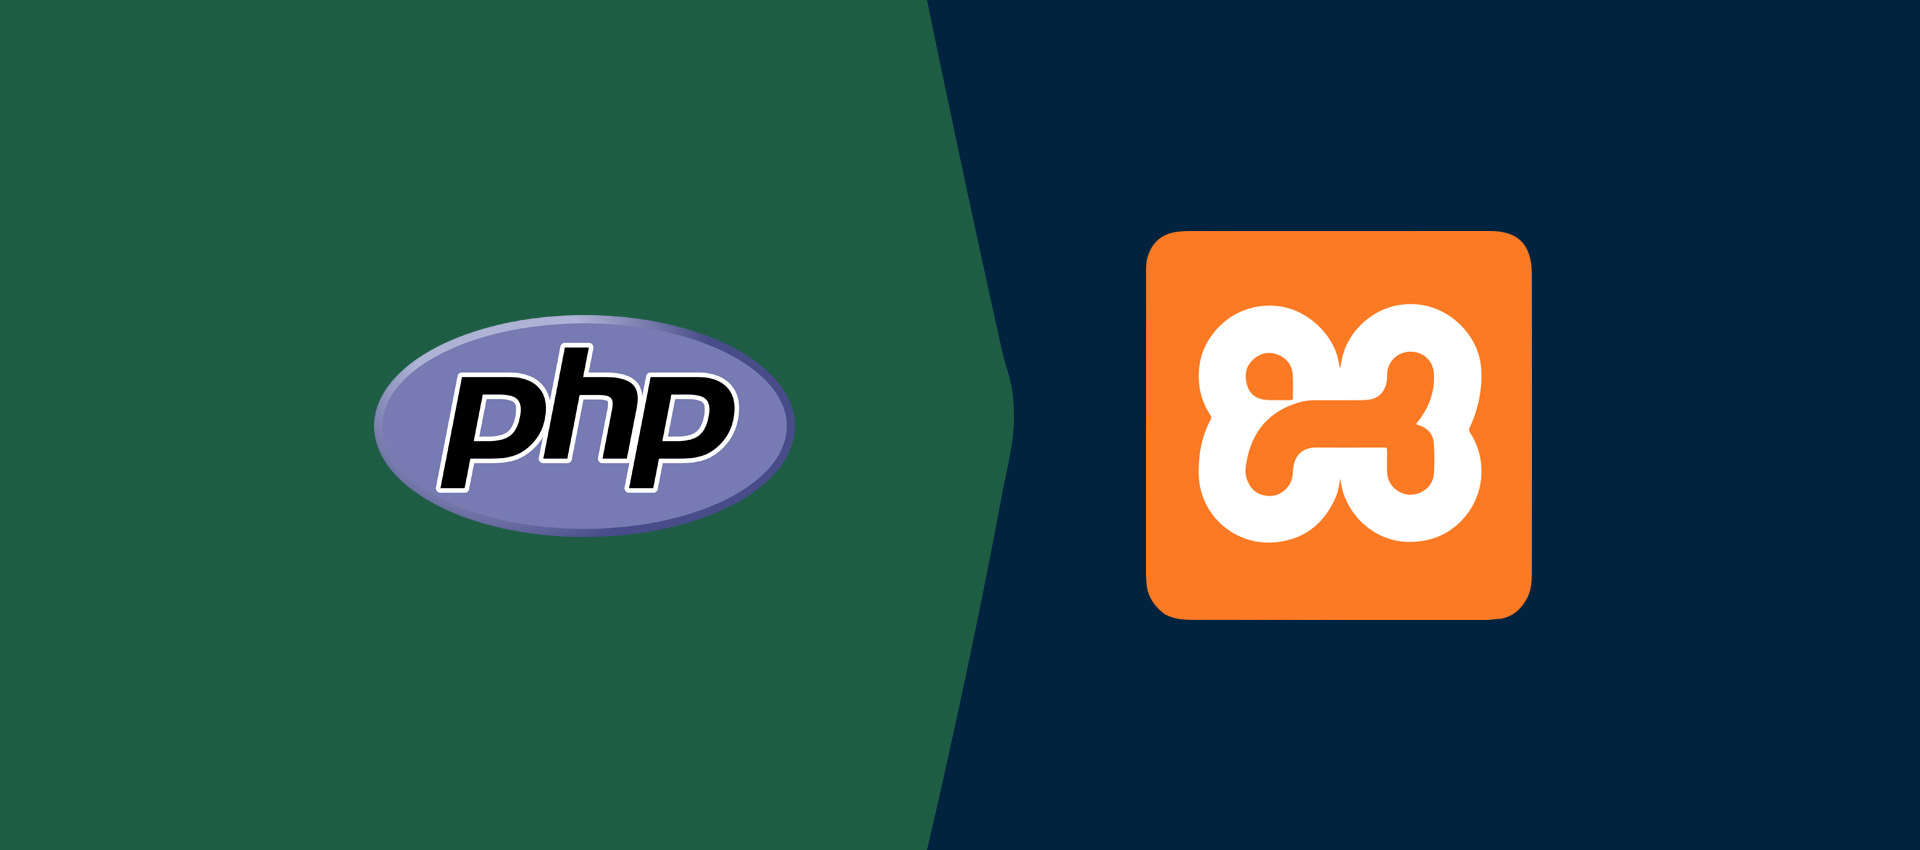 Update PHP Version to PHP 8 In XAMPP On Windows